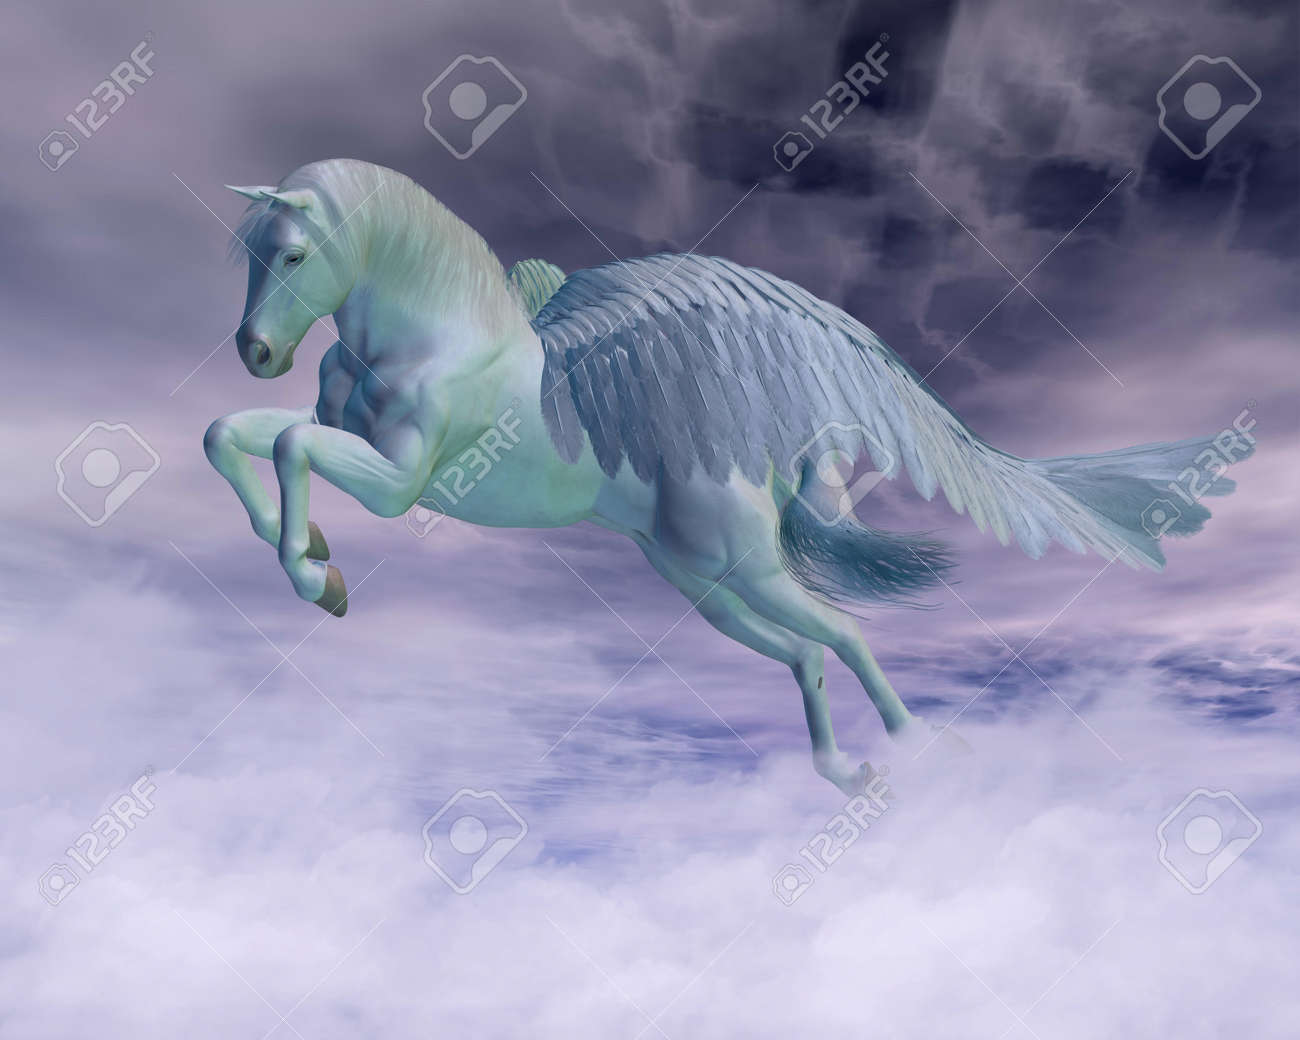 pegasus the flying horse of greek mythology galloping through